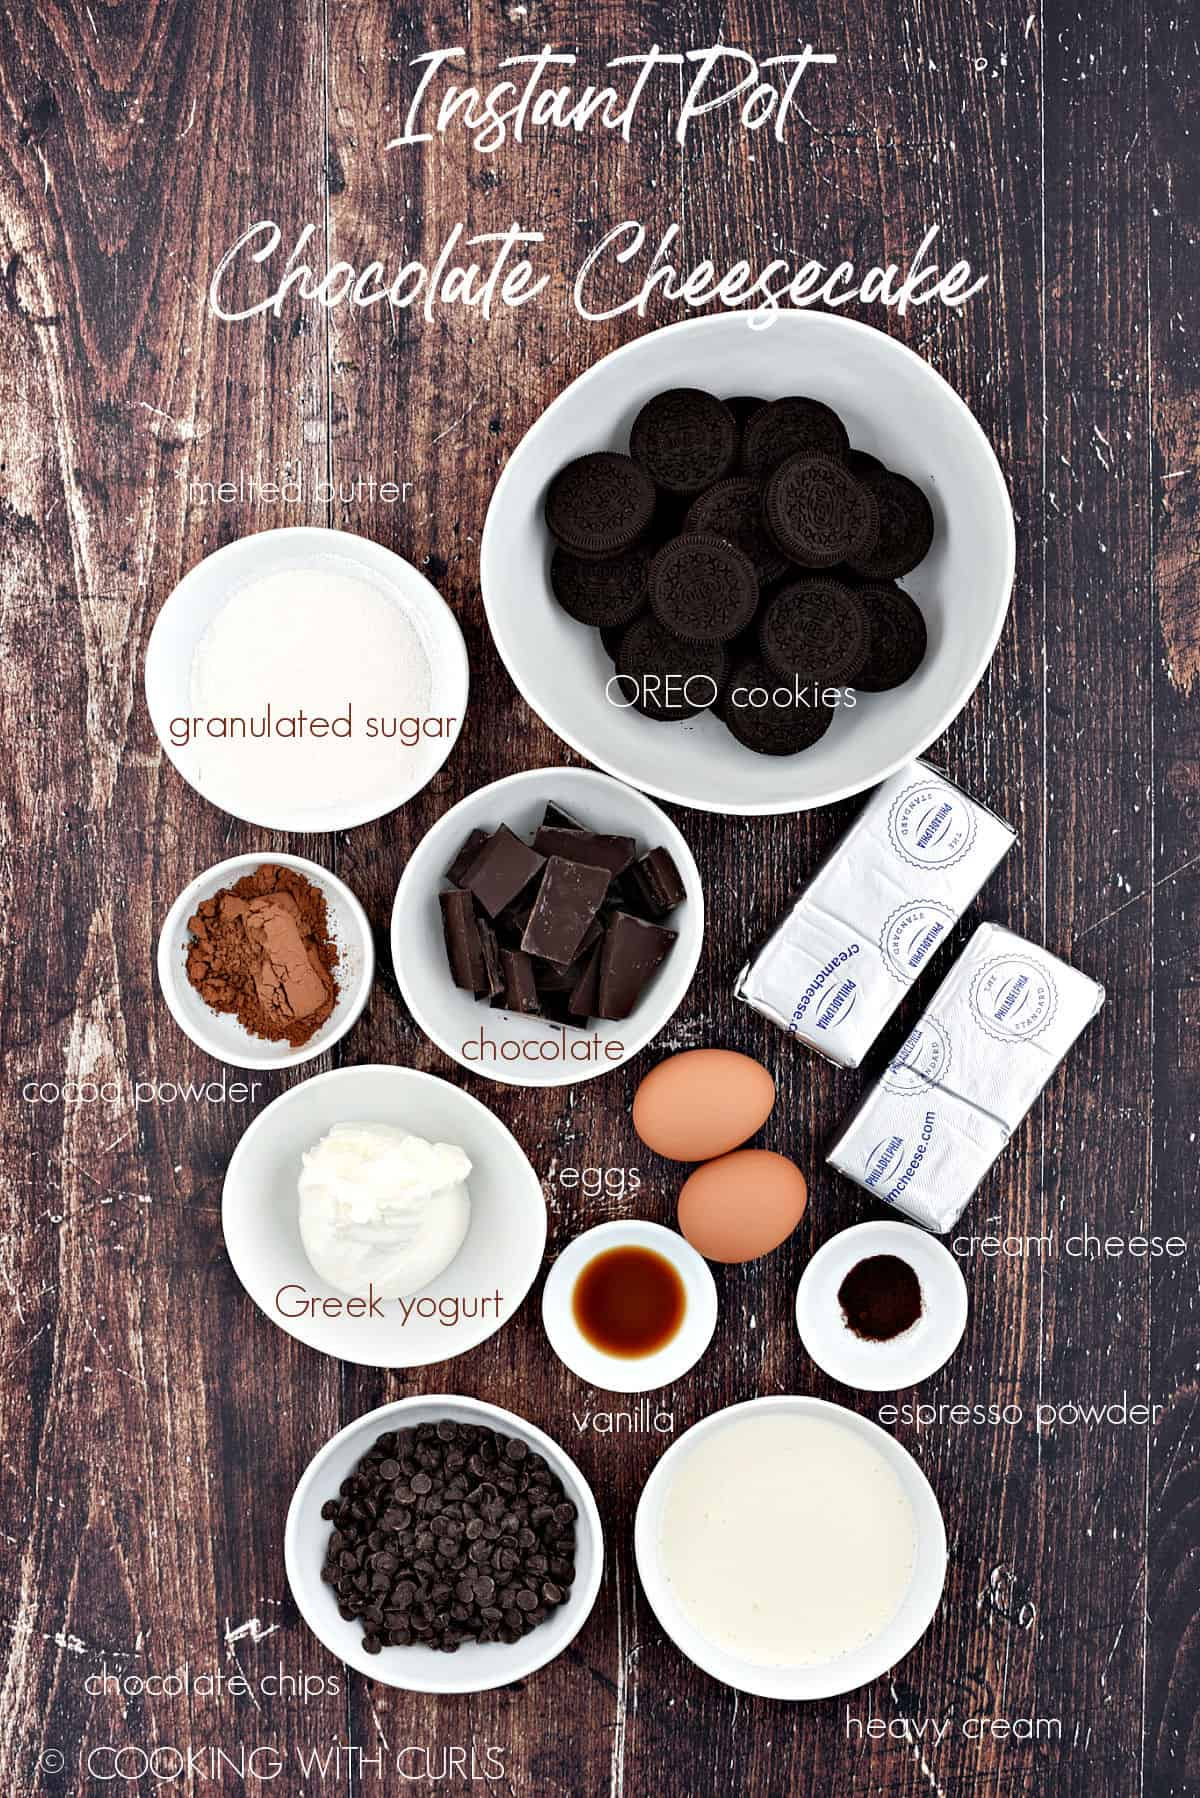 Instant Pot Chocolate Cheesecake ingredients in white bowls on a wooden background.